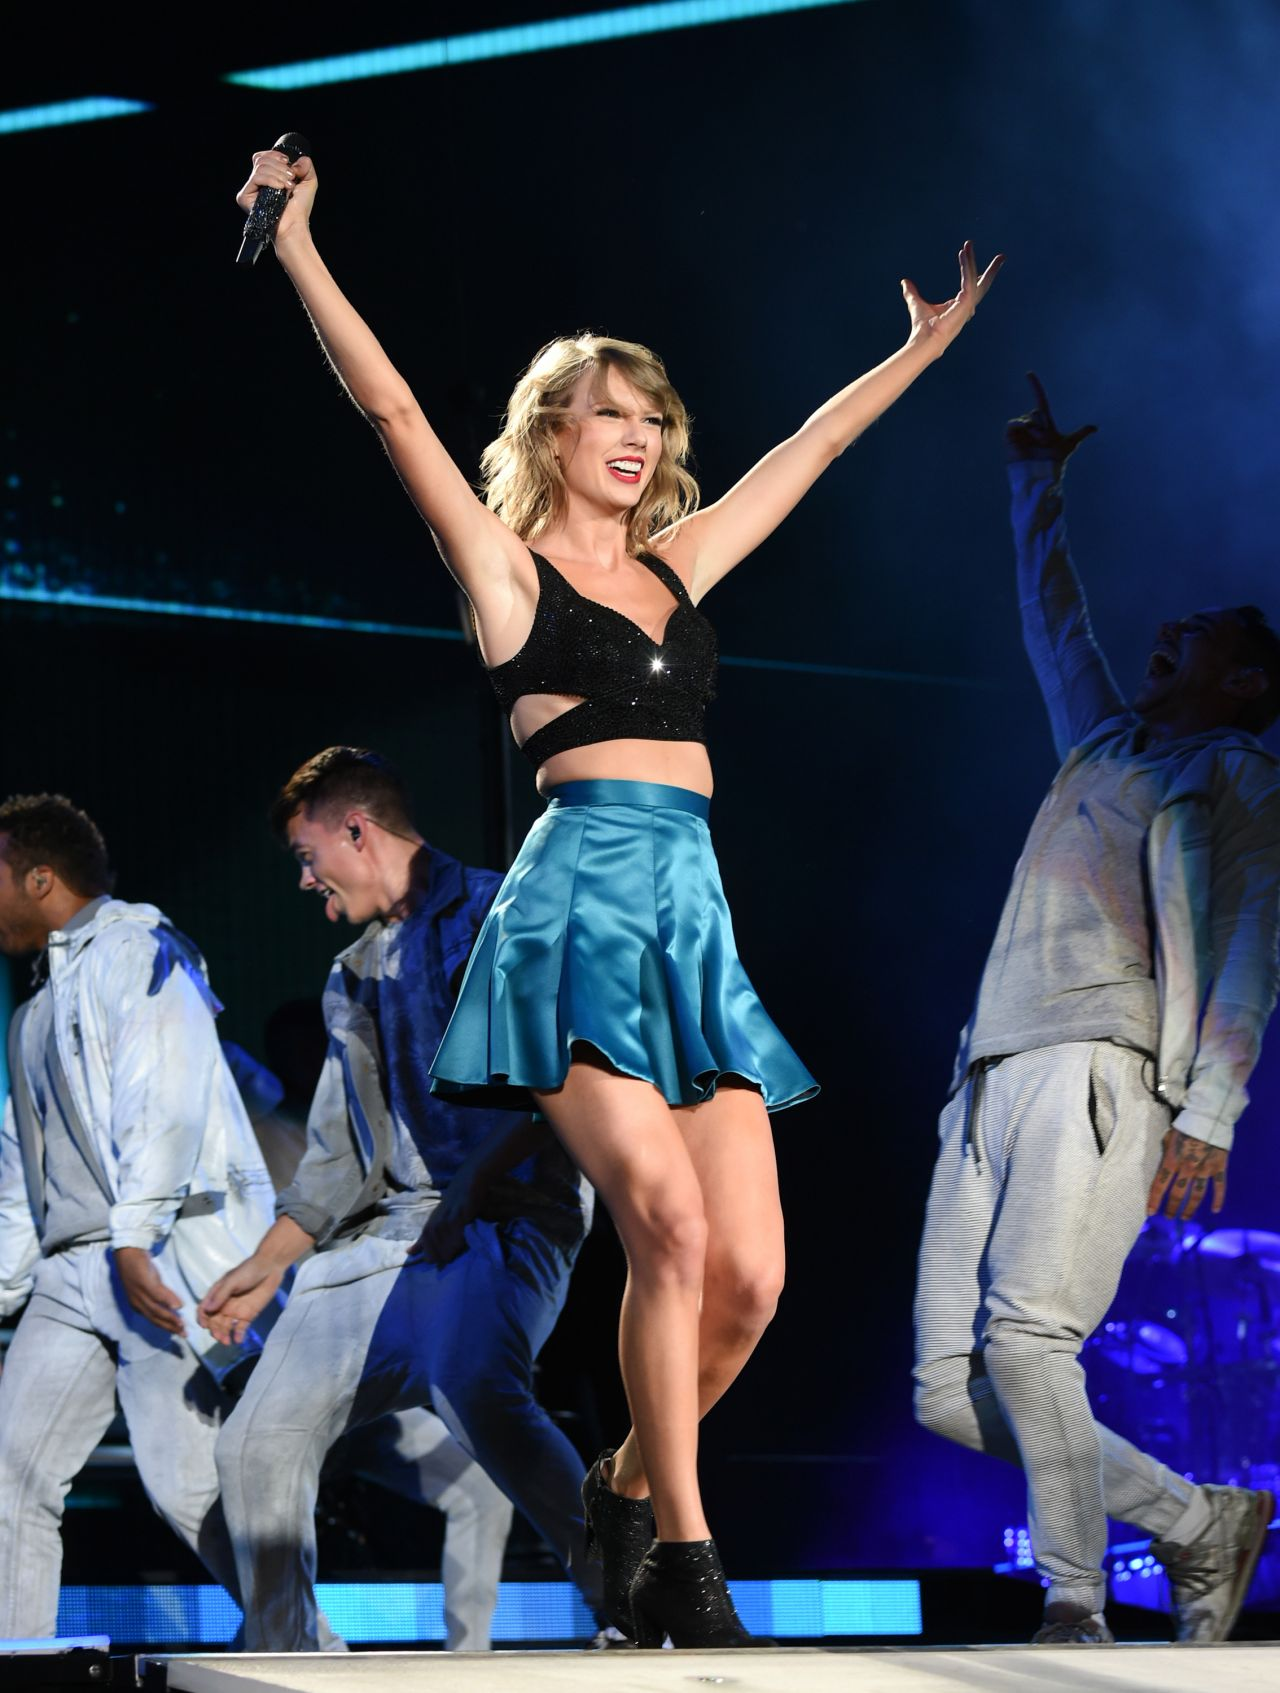 Taylor Swift 1989 World Tour Concert In East Rutherford